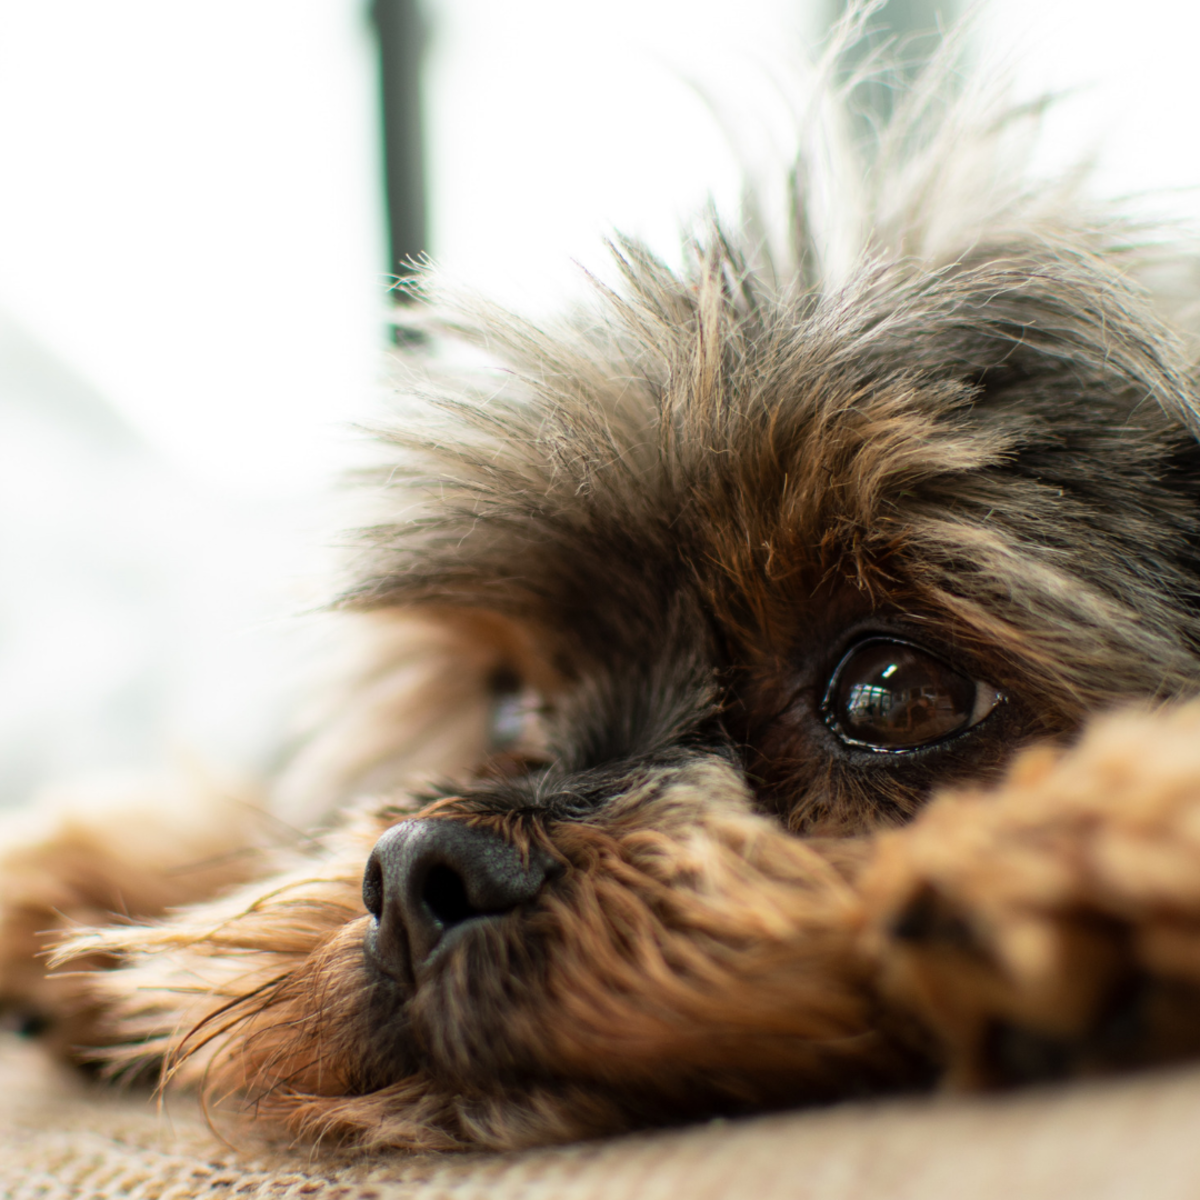 Dogs may refrain from urinating after surgery for numerous reasons.